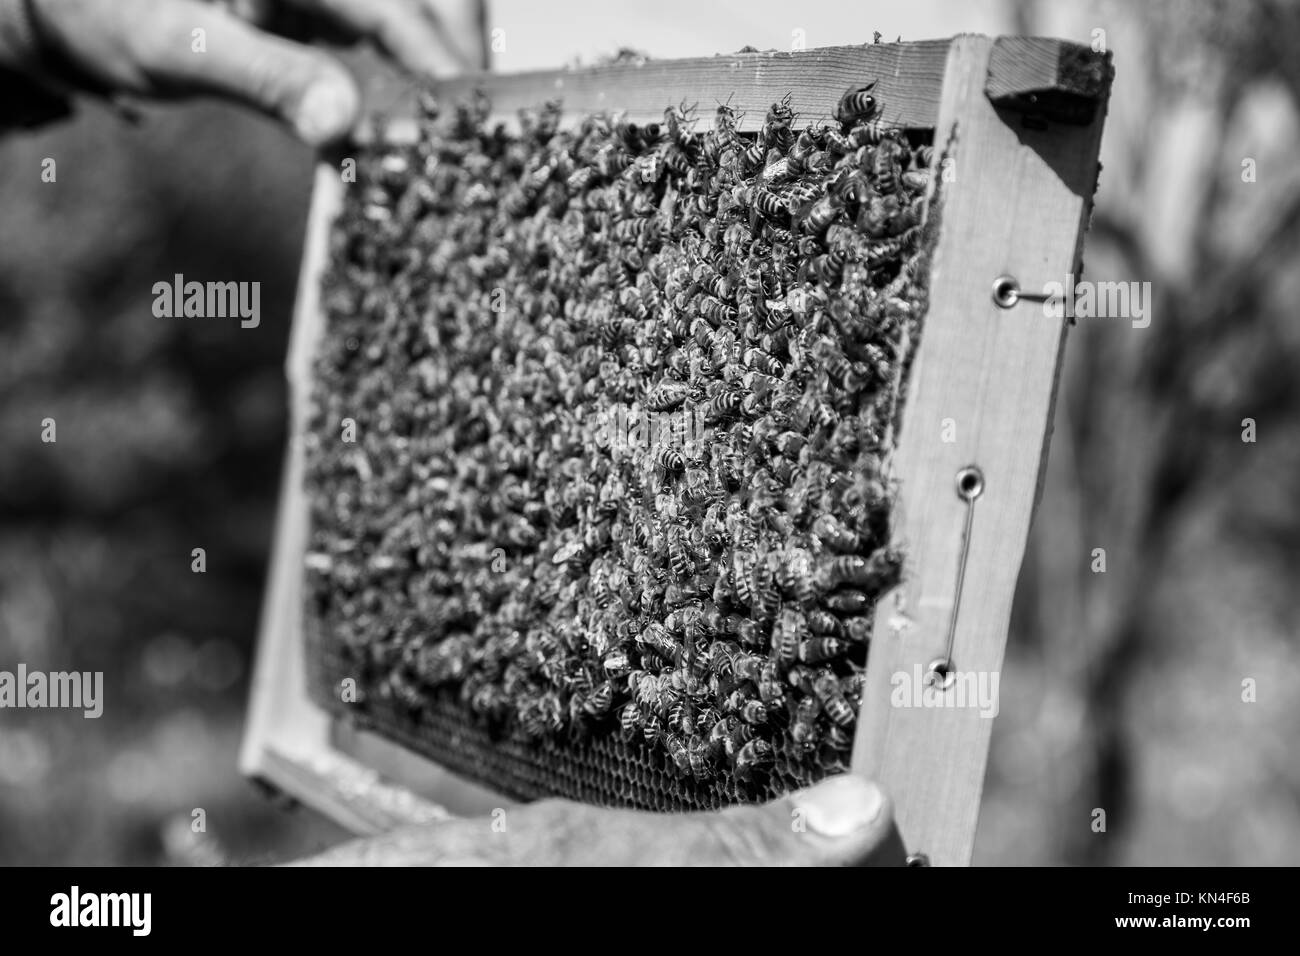 Honey bees to produce organic Bio honey, propolis and collect pollen in Kroustas - Stock Image